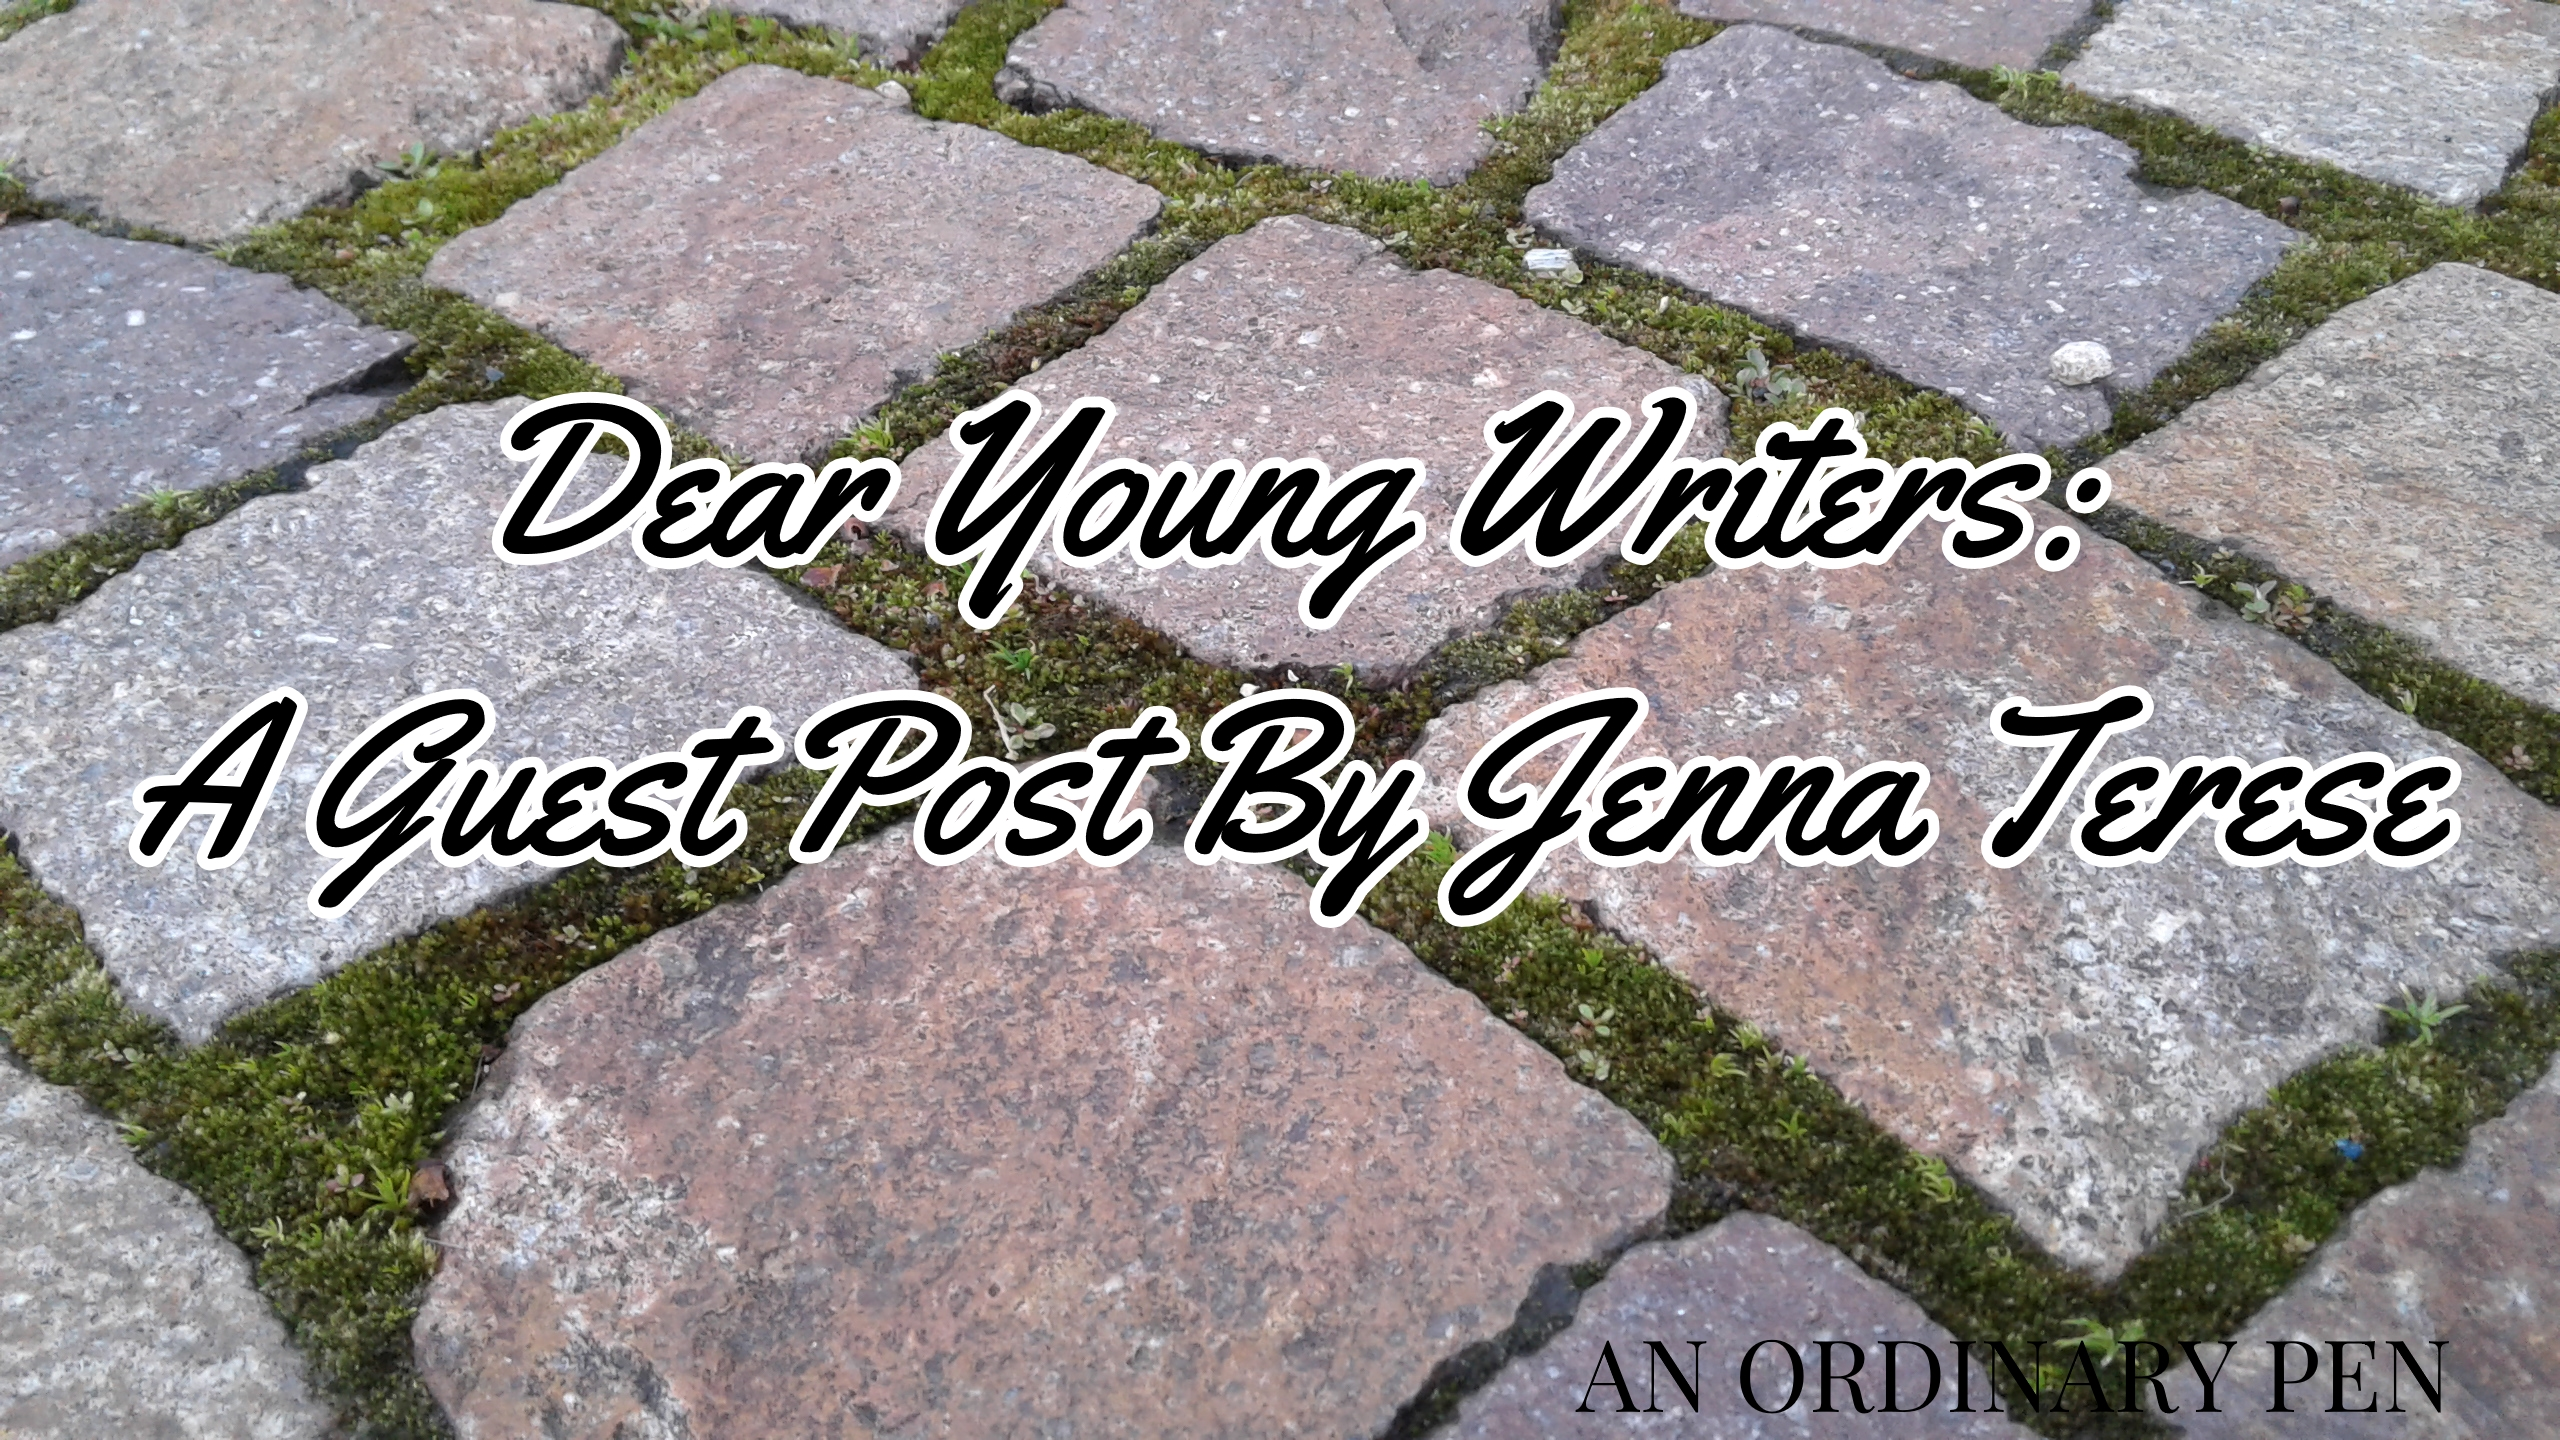 Dear young writers